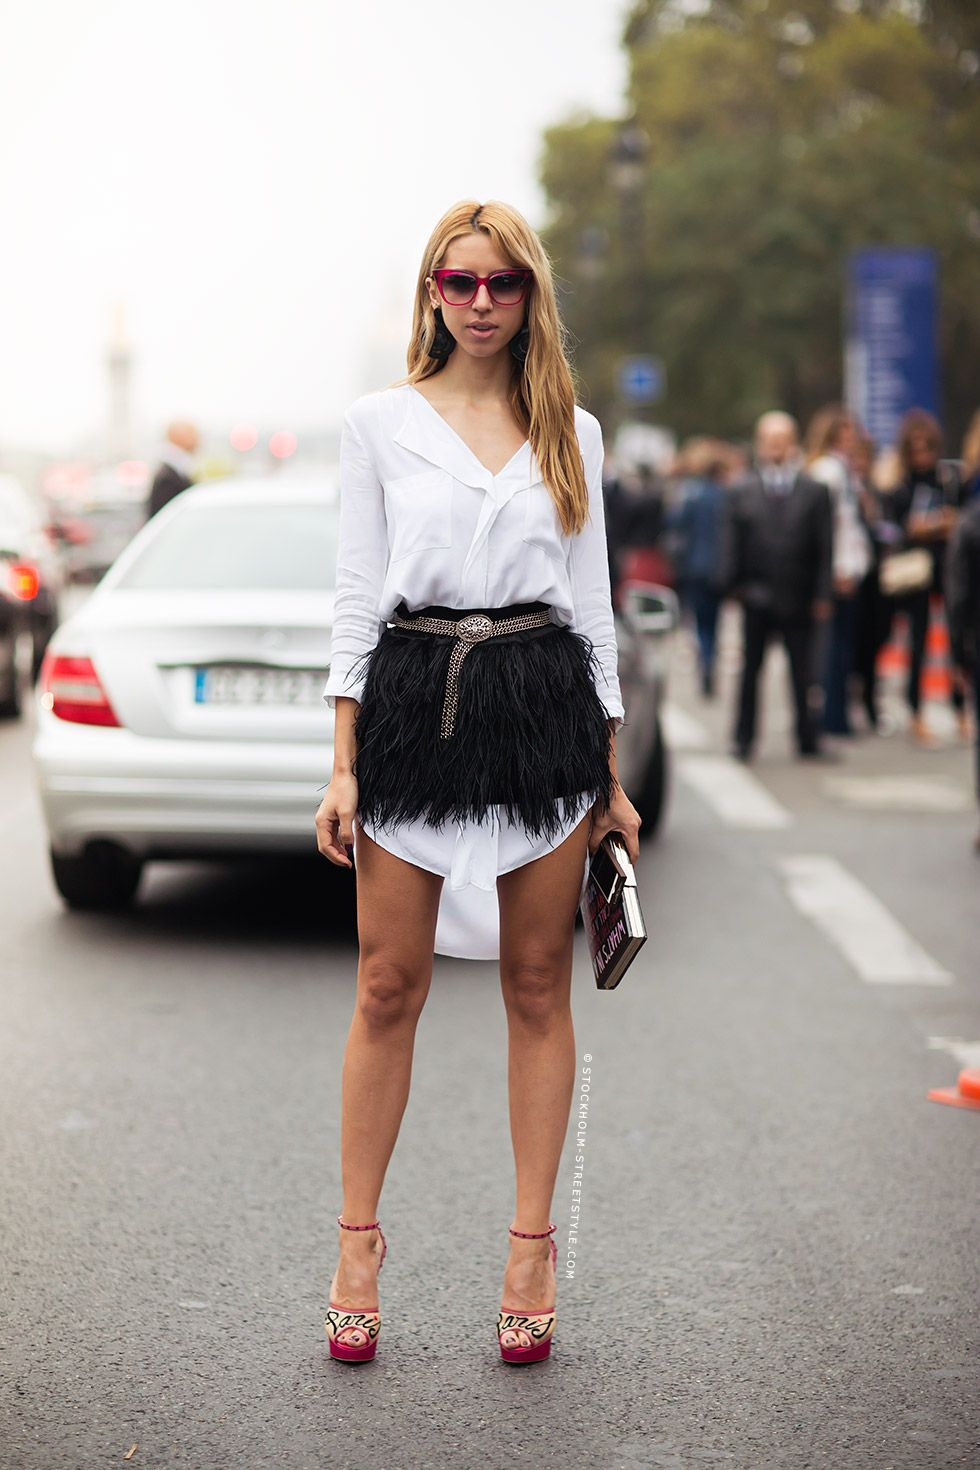 white shirt chic with feathers. why not. Paris.